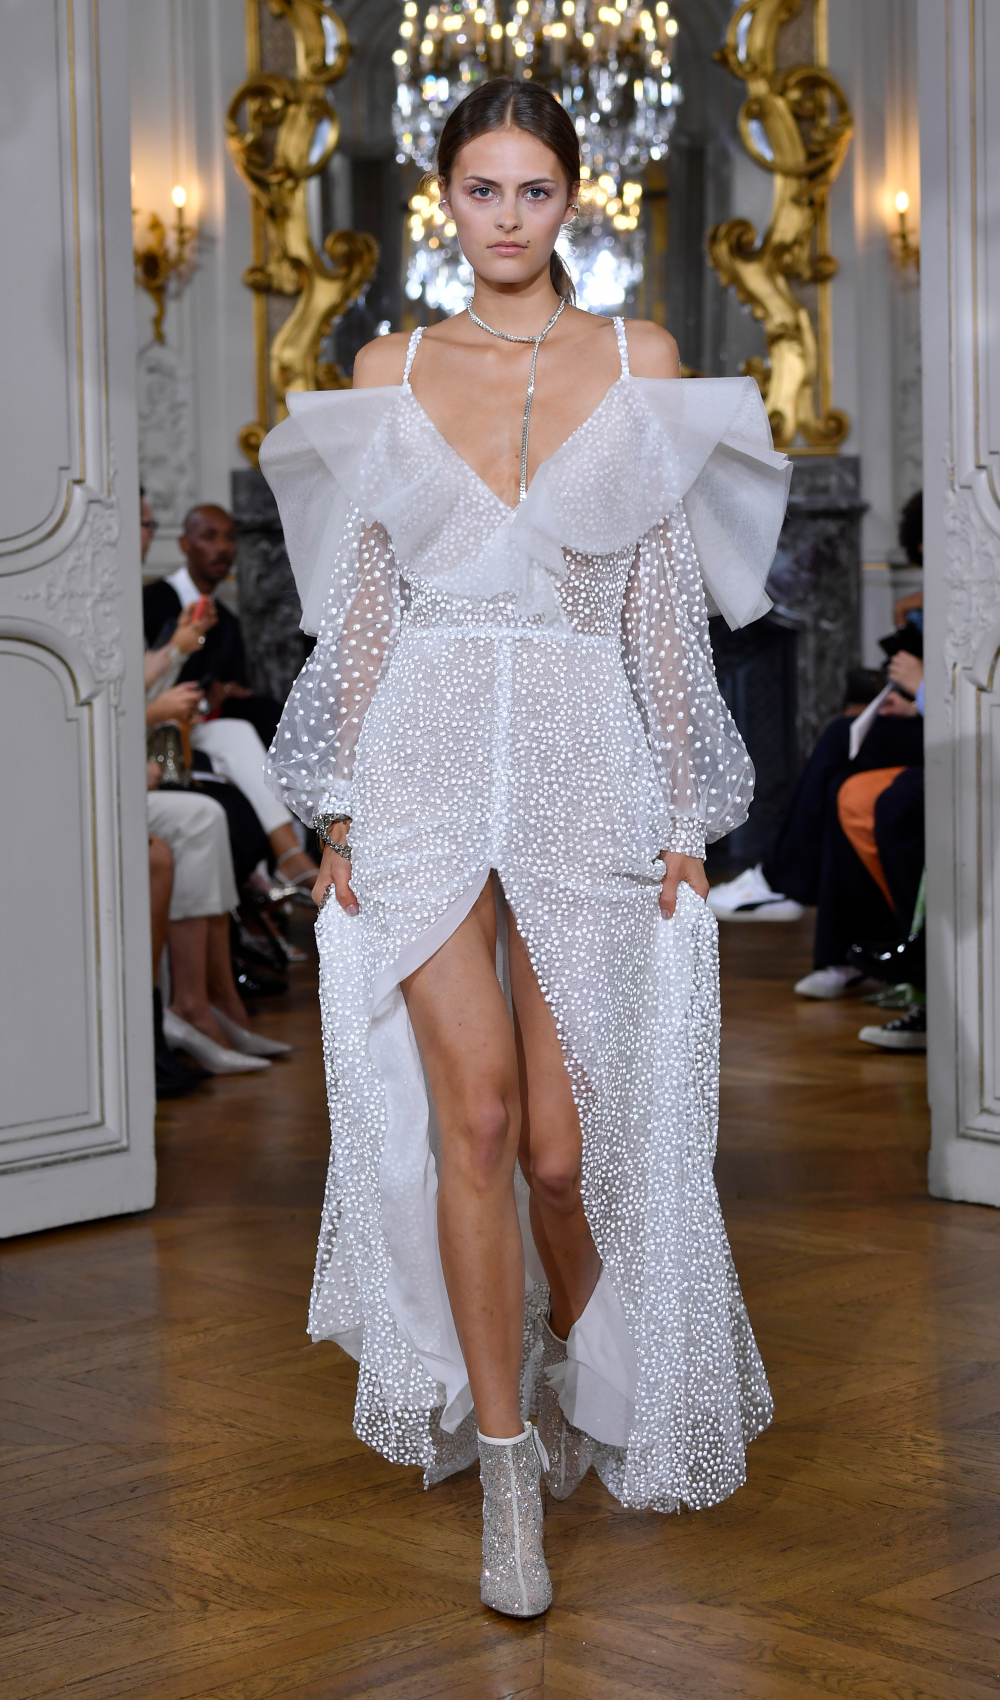 White Crystal Sleeve Dress Catwalk Look